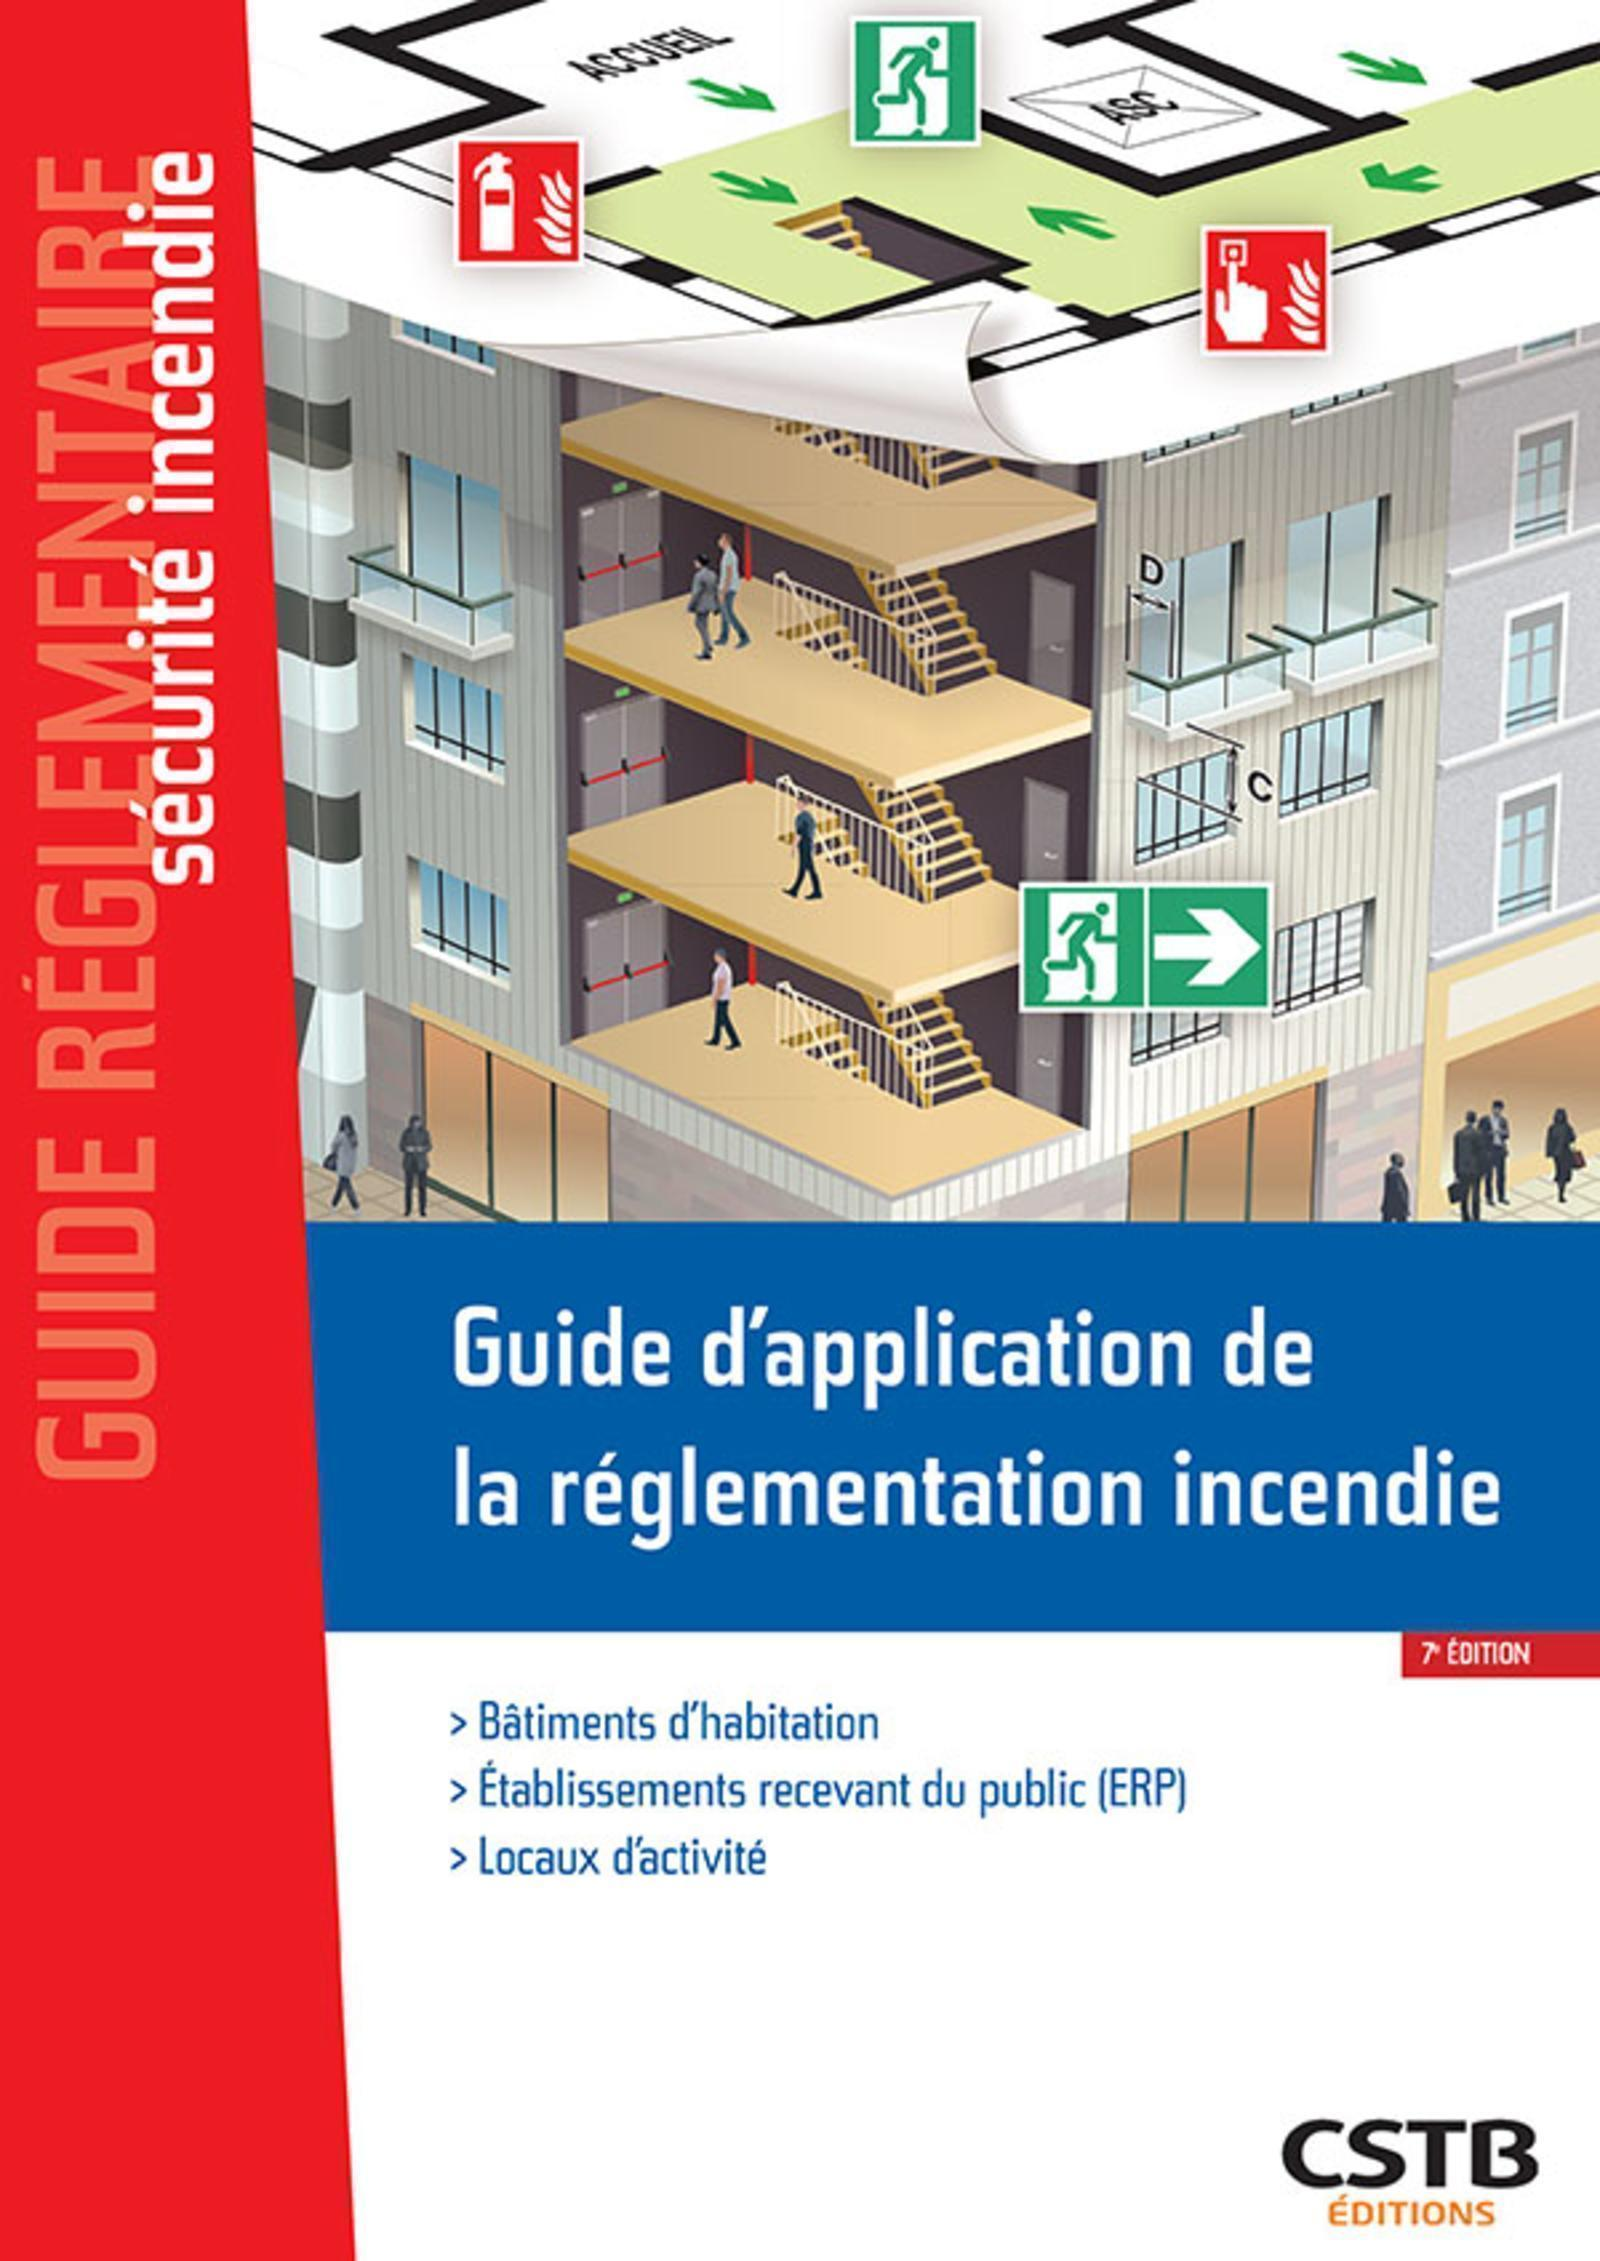 GUIDE D'APPLICATION DE LA REGLEMENTATION INCENDIE - BATIMENTS D'HABITATION - ETABLISSEMENTS RECEVANT